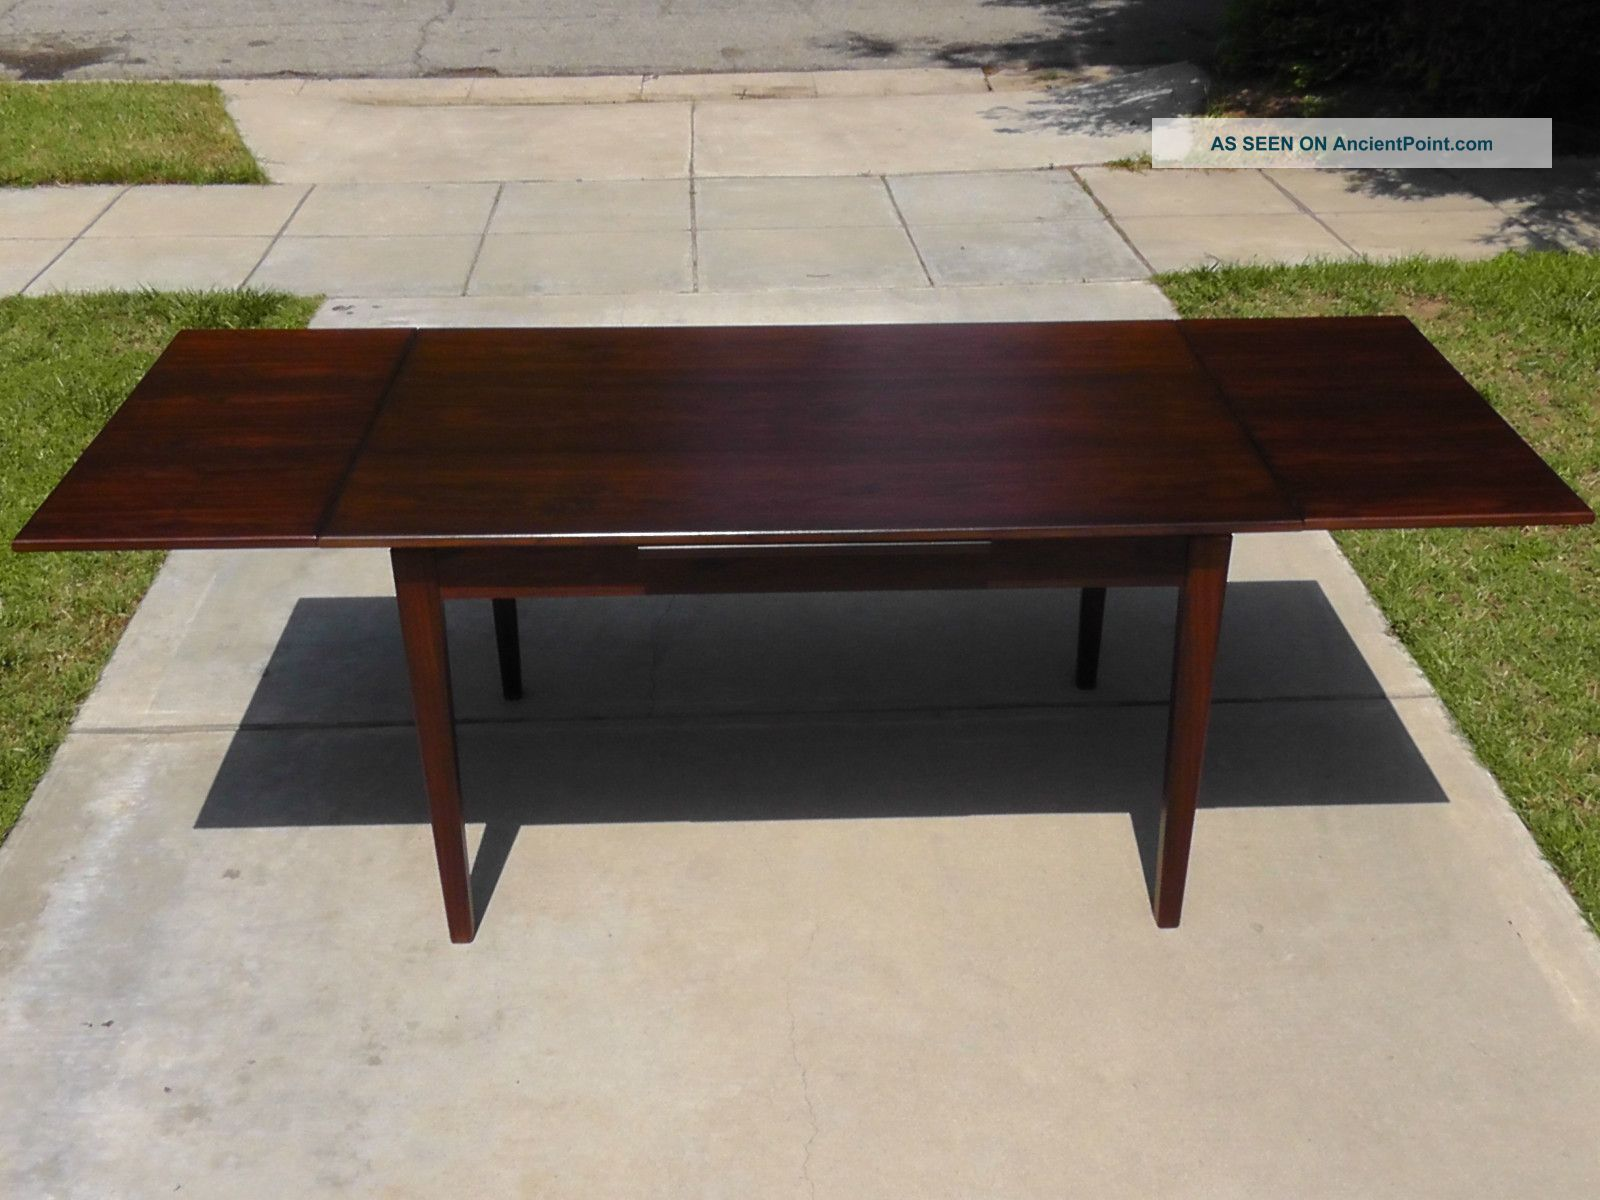 Modern Dining Table Plans: Danish Extendable Dining Table PDF Woodworking